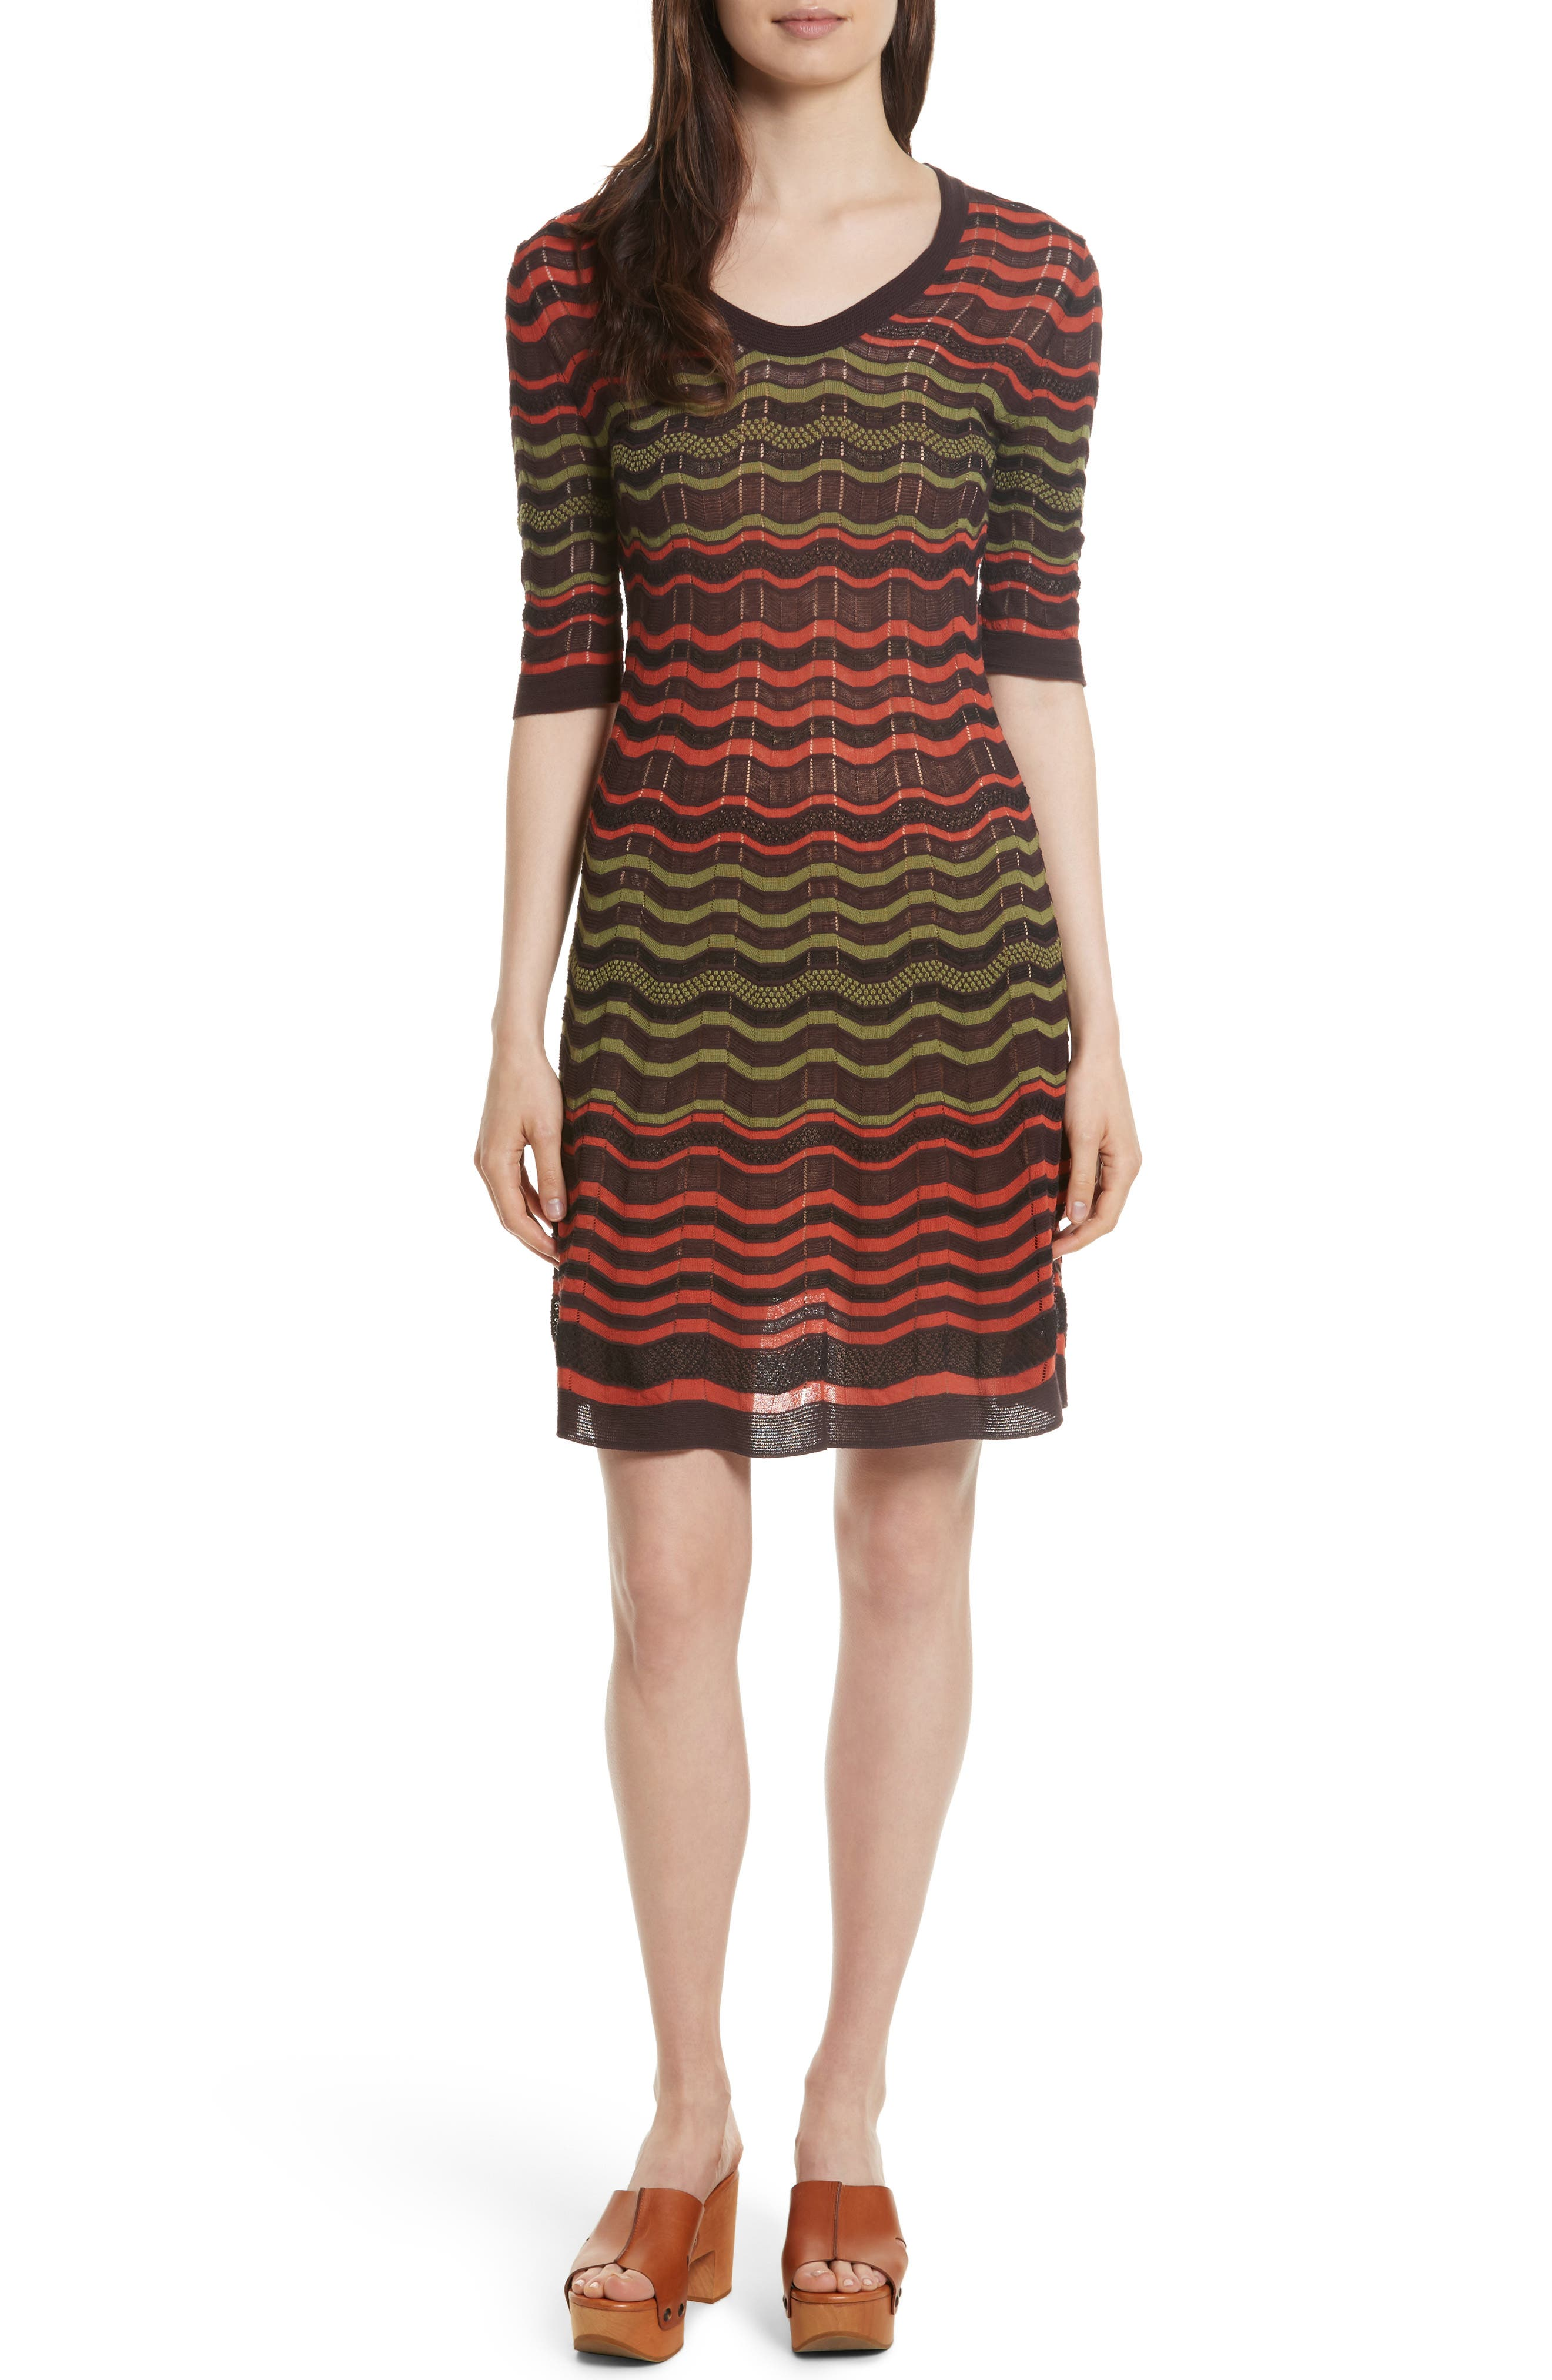 M Missoni Greek Key Dress